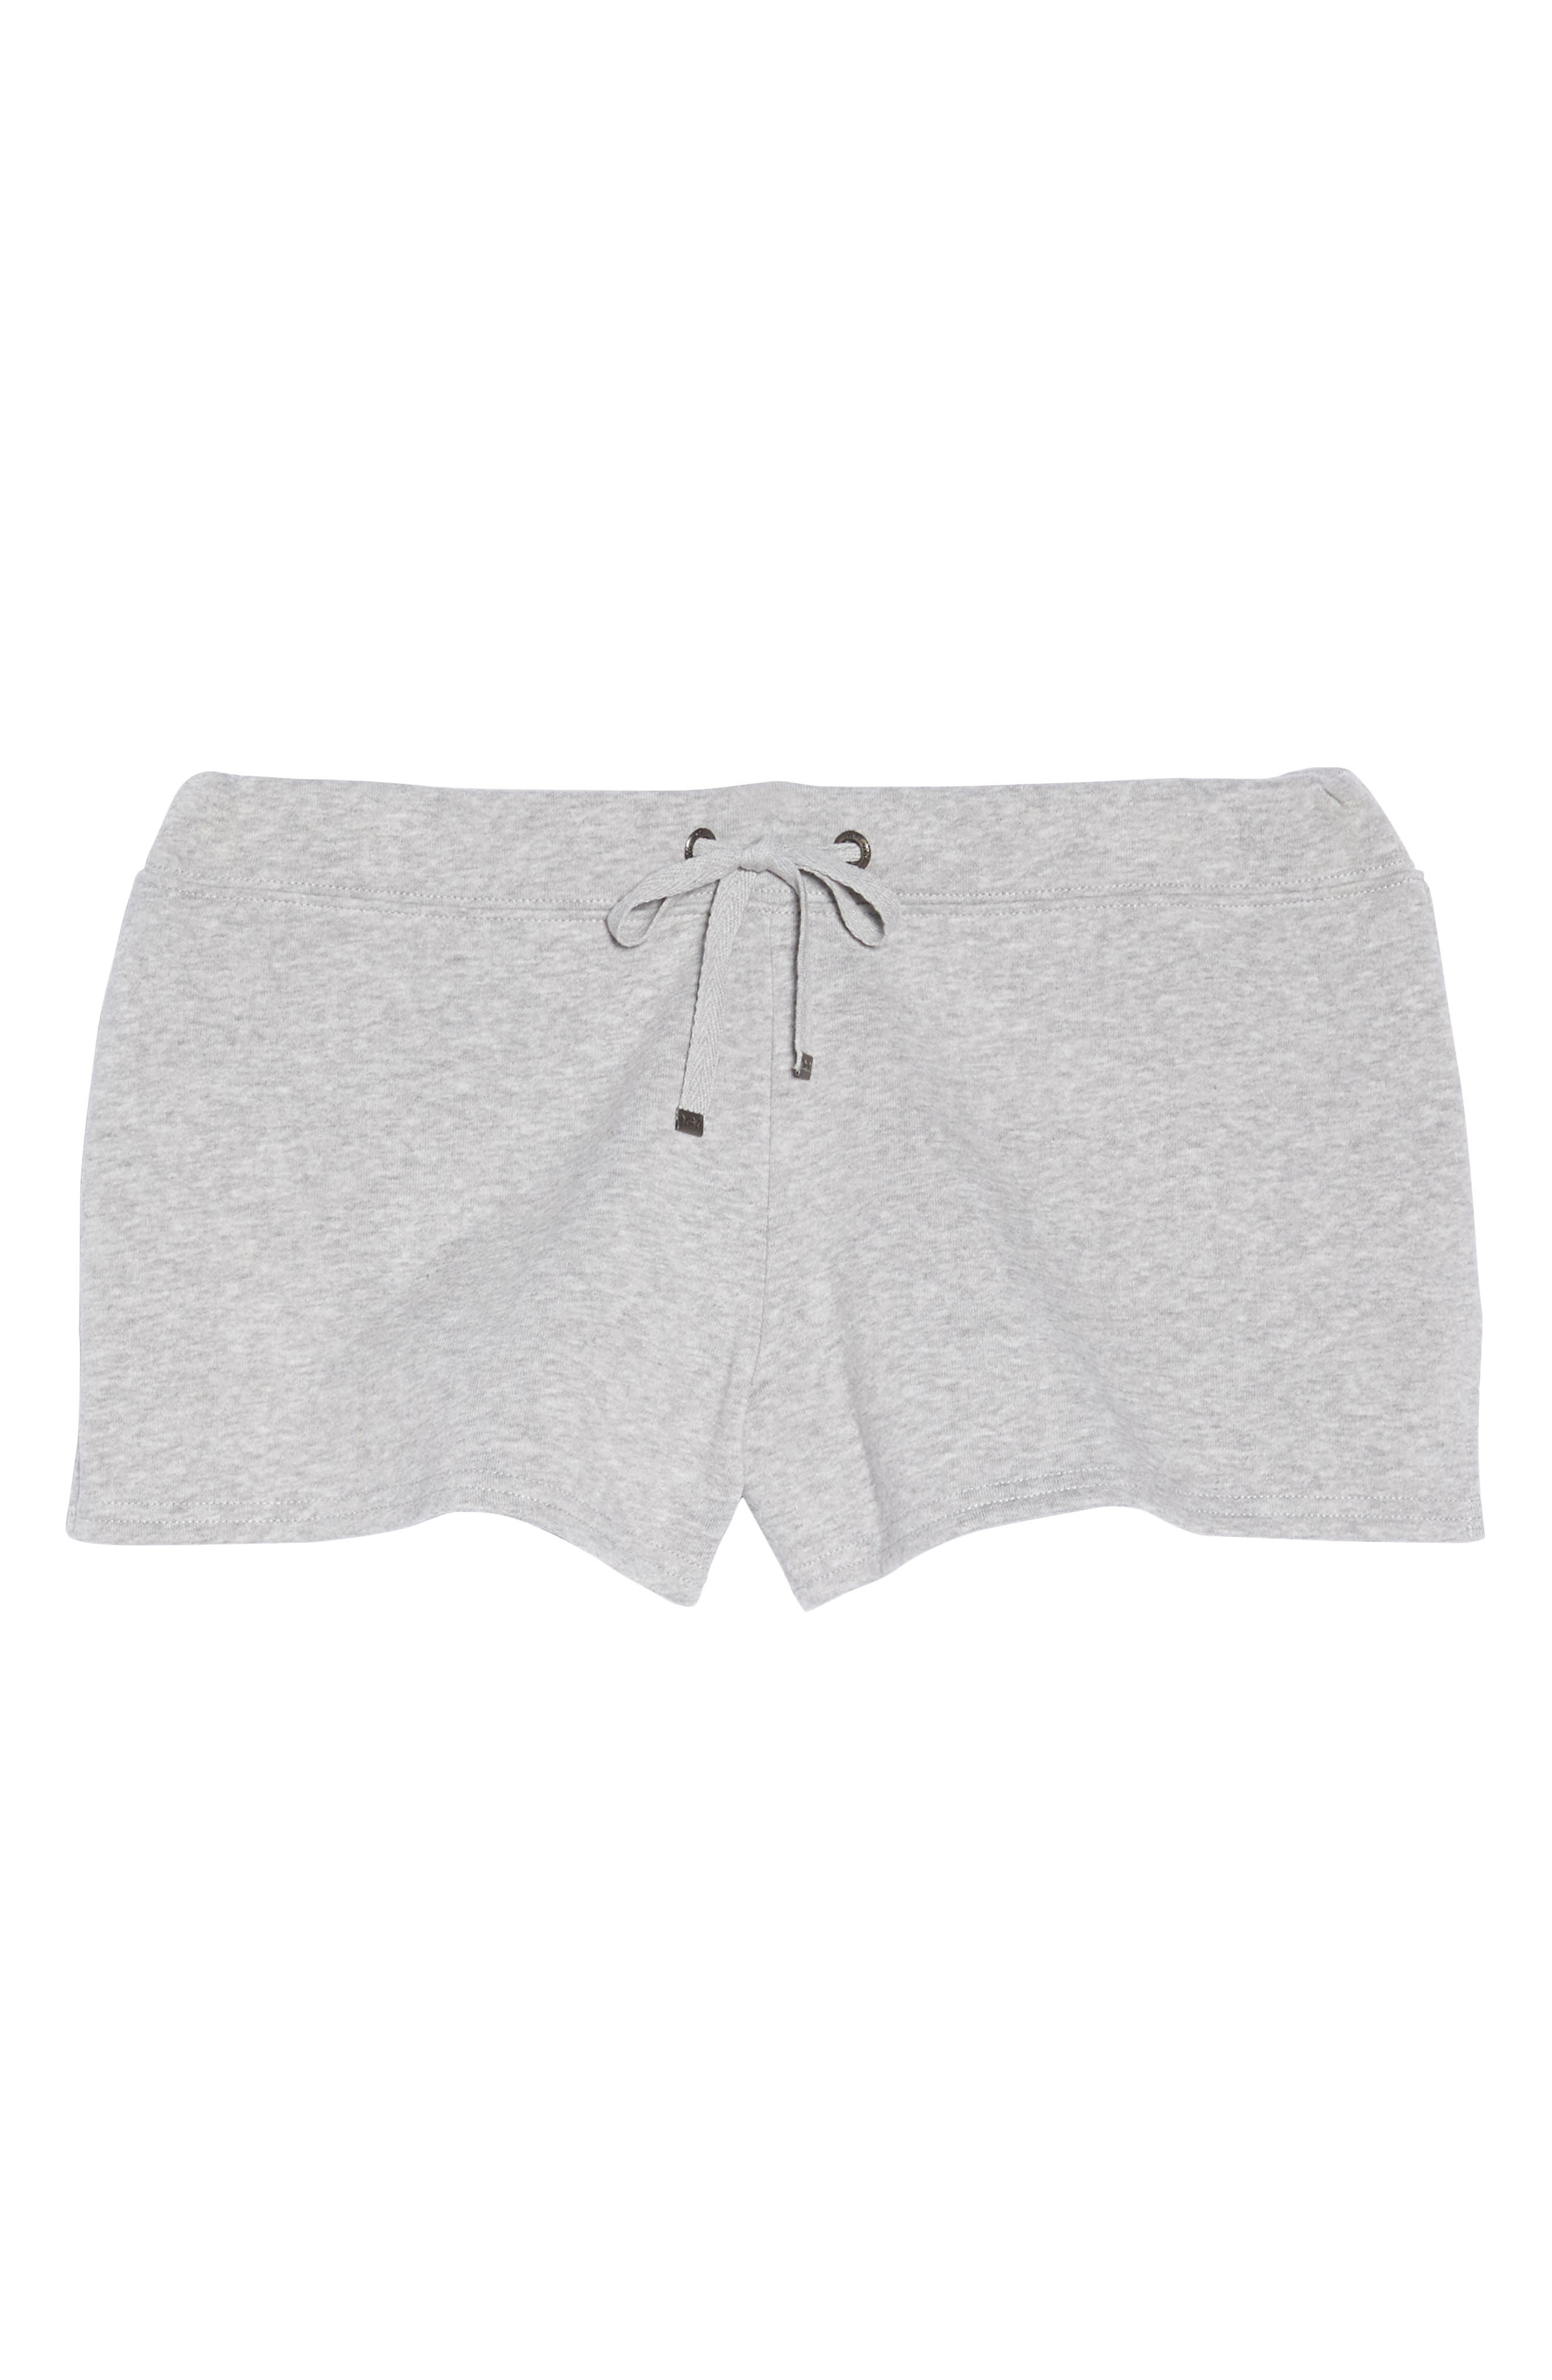 Take It Easy Lounge Shorts,                             Alternate thumbnail 6, color,                             021